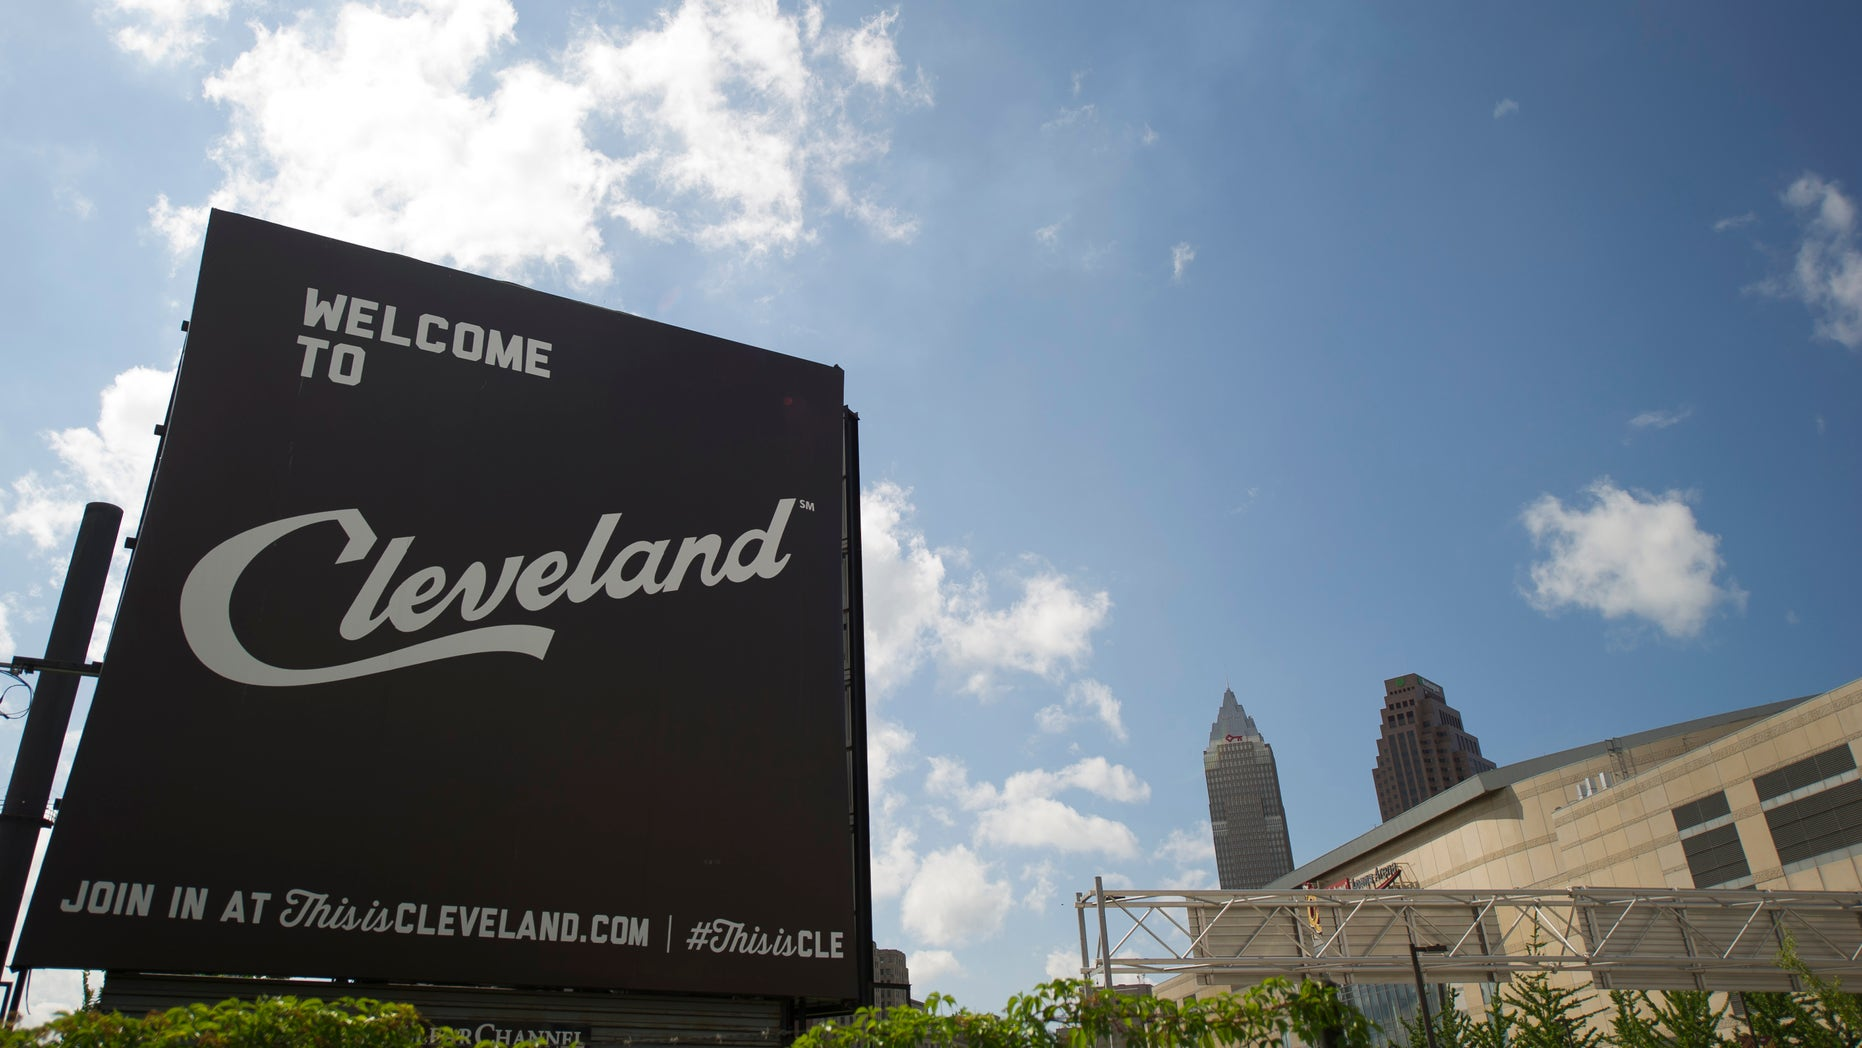 CLEVELAND, OH  - JULY 8: A view of downtown Cleveland, which has been chosen for the 2016 Republican National Convention, on July 8, 2014 in Clevland, Ohio.  The 2016 event will be held at the Quicken Loans Arena.  (Photo by Jeff Swensen/Getty Images)